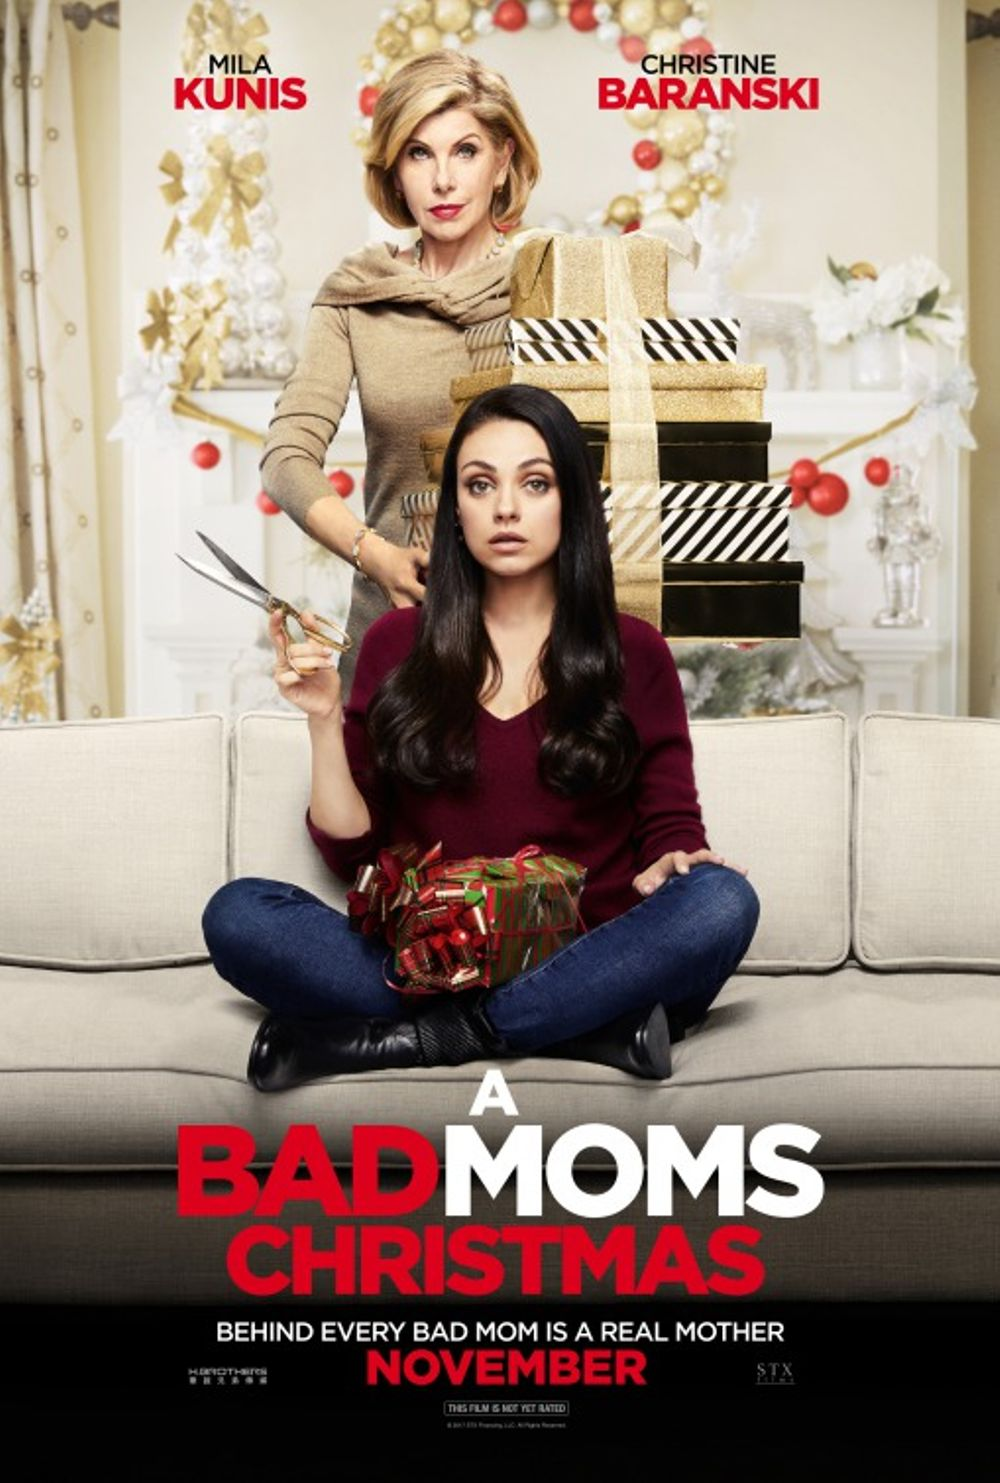 A Bad Moms Christmas Movie Review English Movie Review